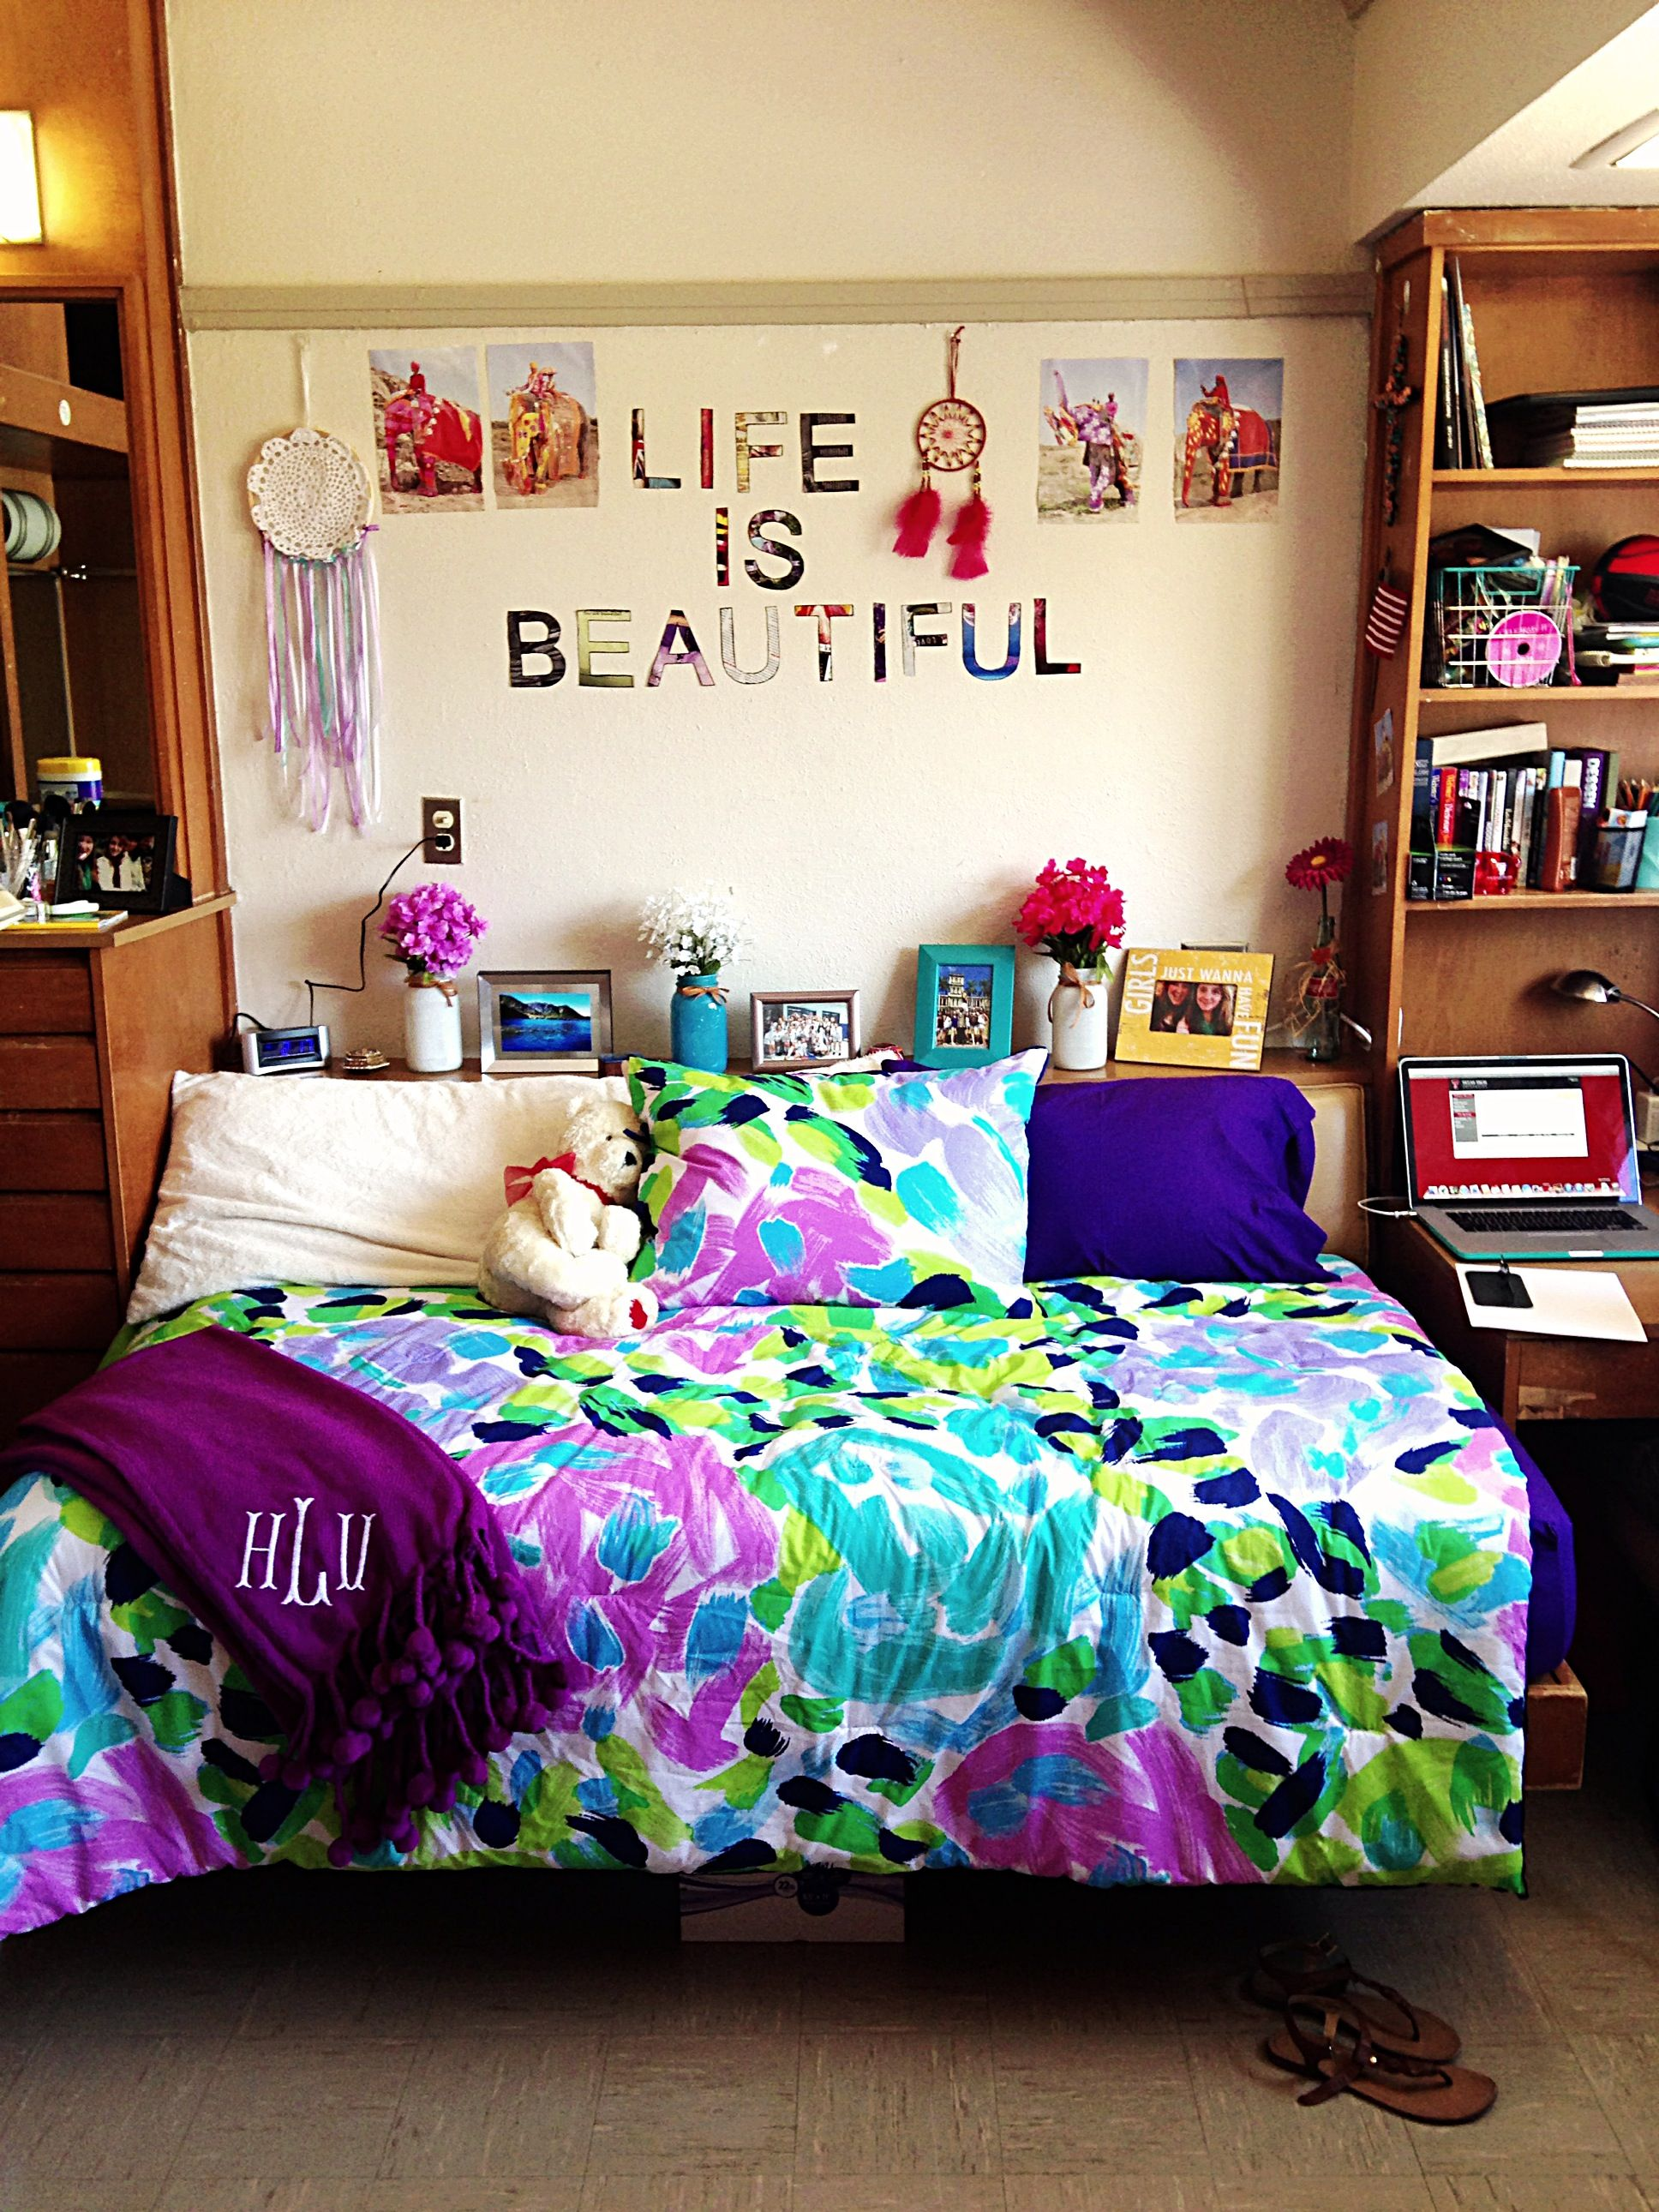 Dorm Room Styles: My Dorm Room Looked Just Like This... And Apparently 20